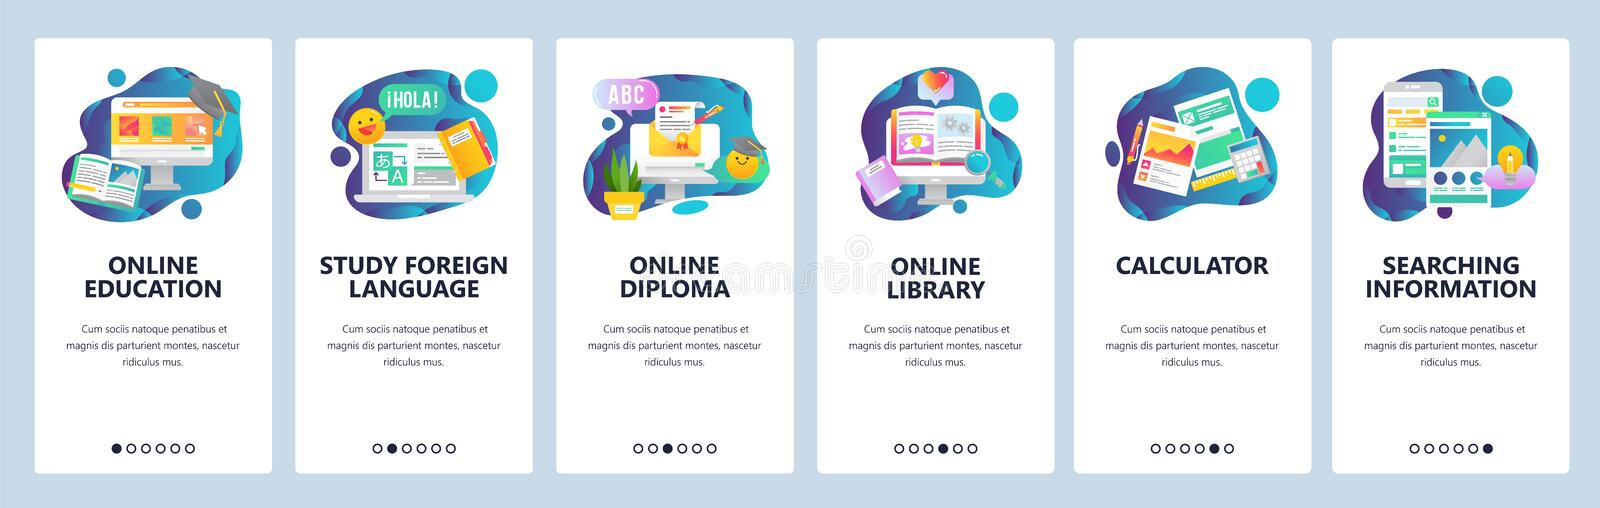 Web site onboarding screens. Online education. Digital internet tutorials and courses. Menu vector banner template for stock illustration